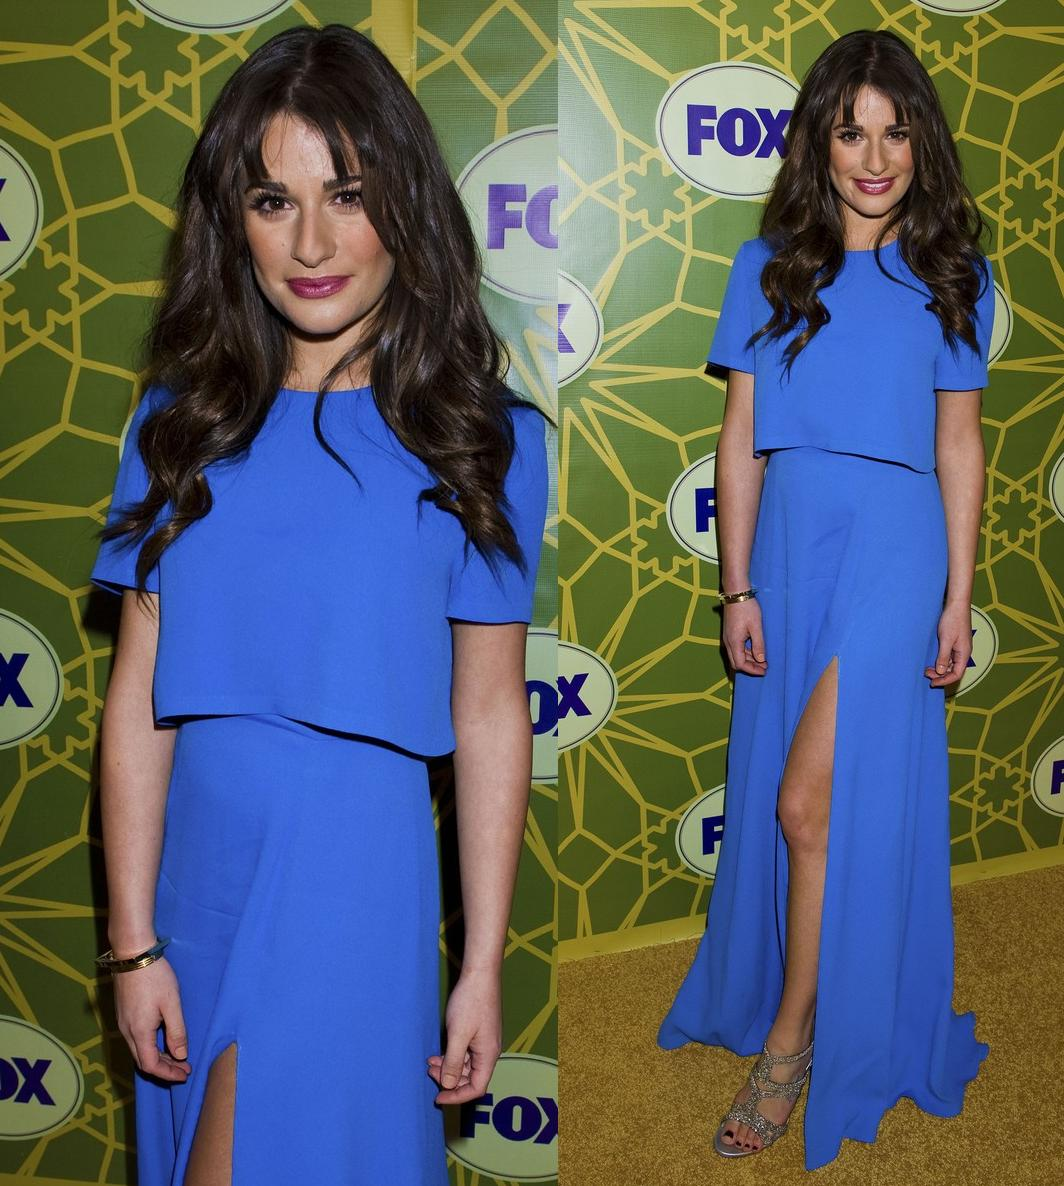 http://2.bp.blogspot.com/-33v6vJPfWUY/Twsd16gSeMI/AAAAAAAAD-Q/dc6yoiDCsQ0/s1600/Lea+Michele+In+Peter+Som+Spring+2012+-+Fox+All+Star+Party+2012.jpg